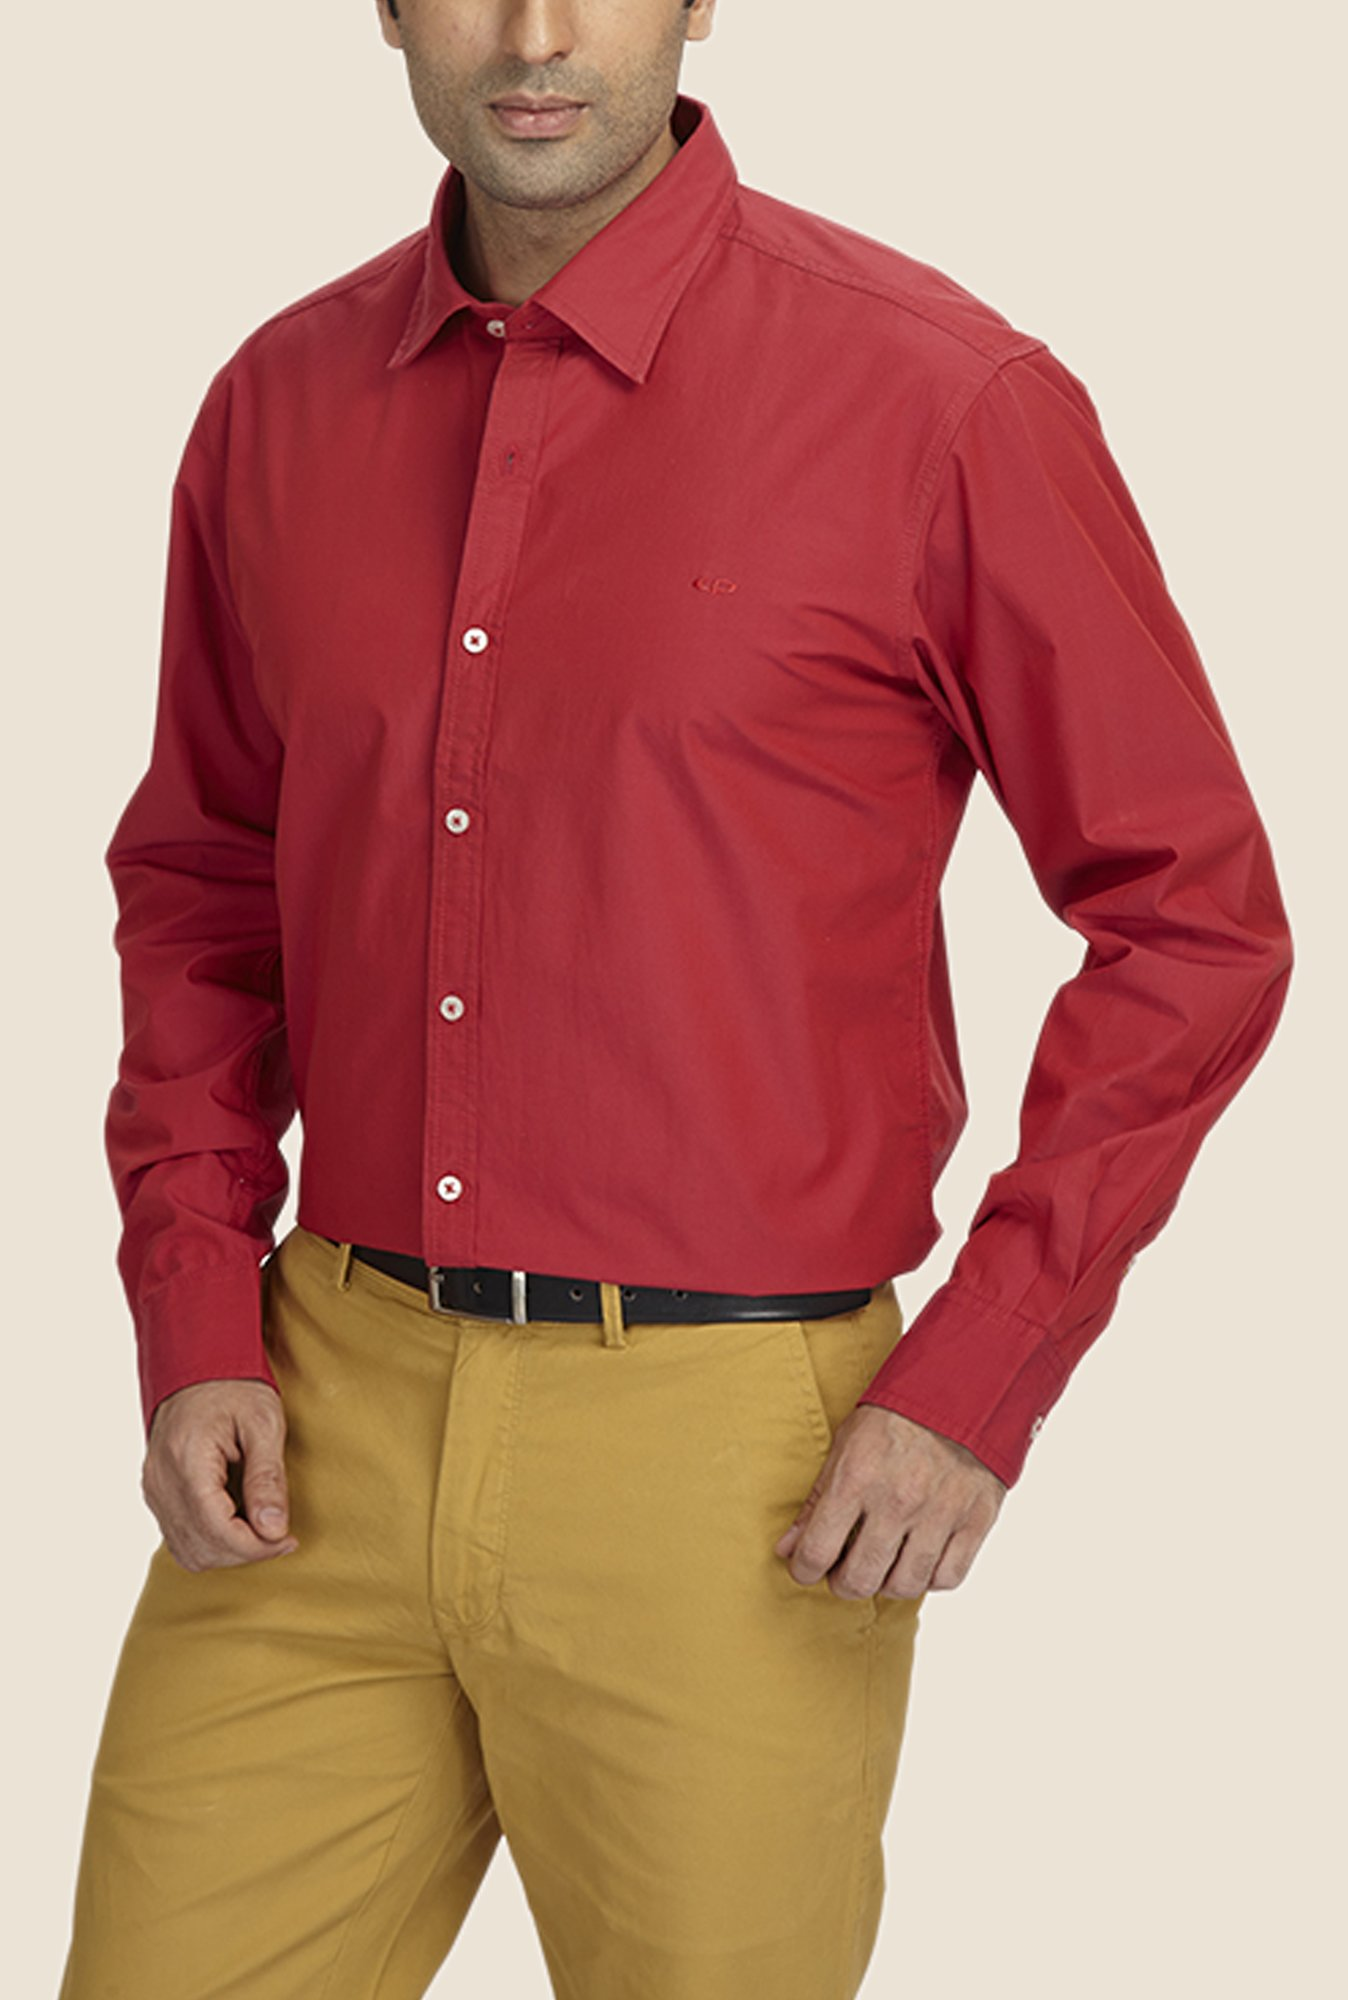 ColorPlus Red Solid Shirt